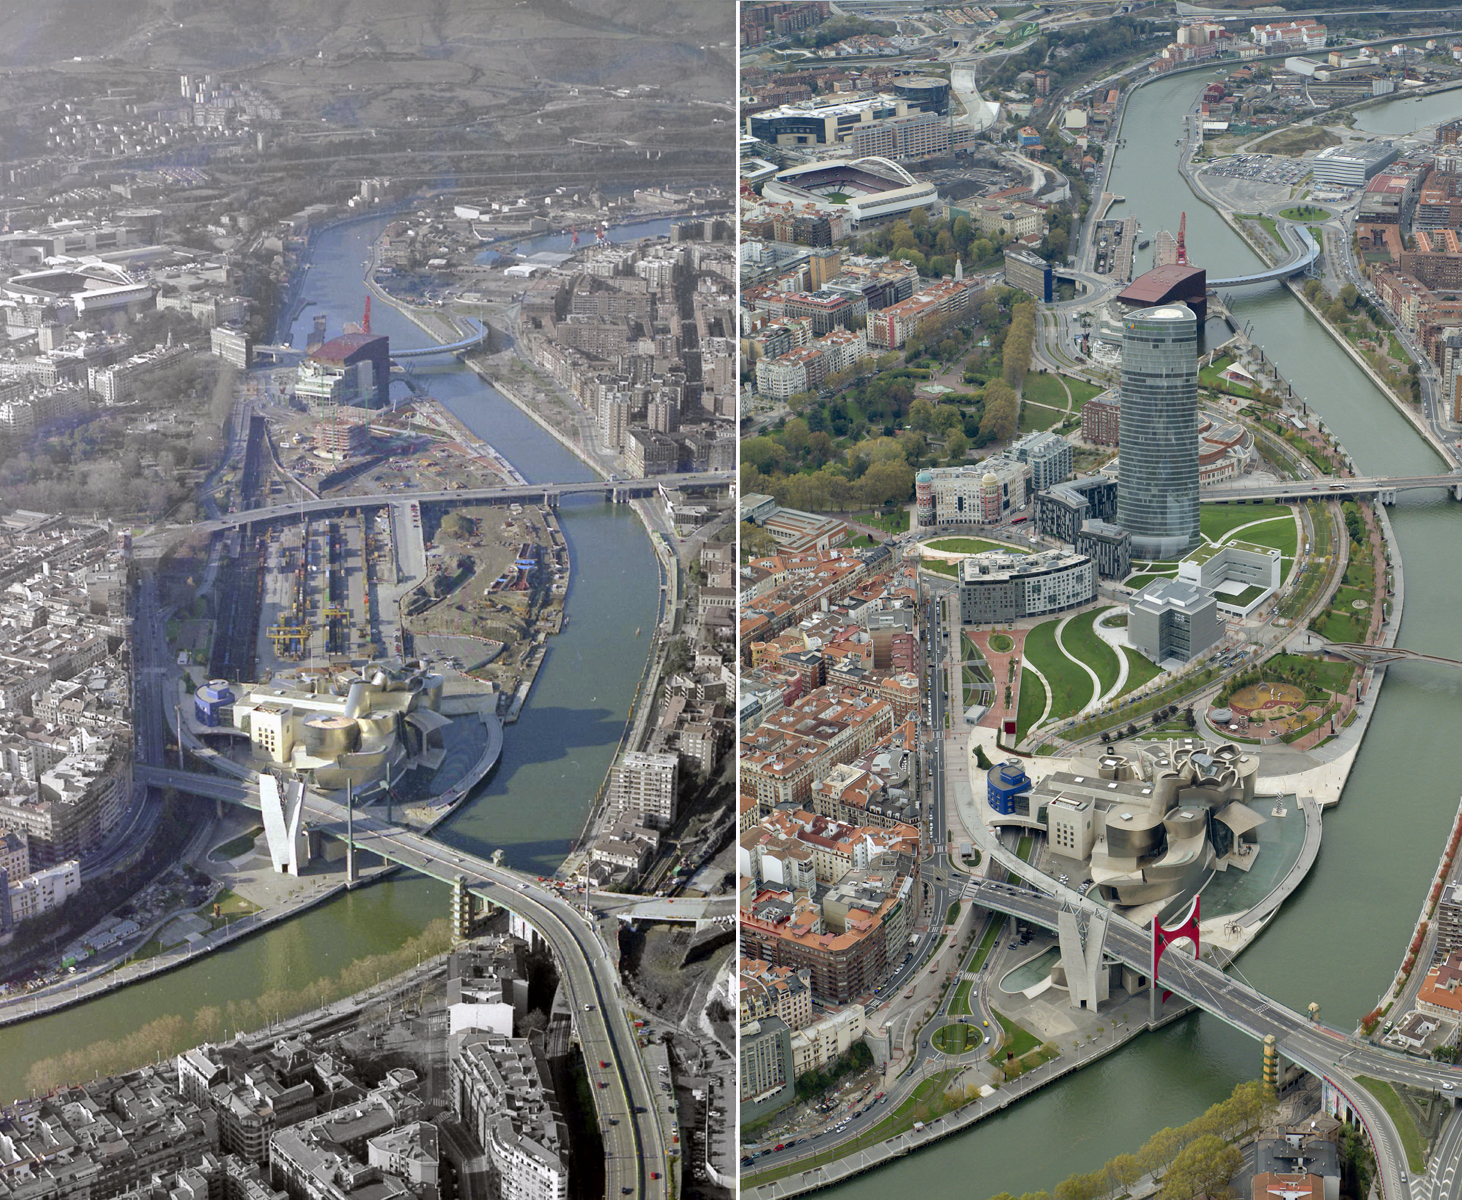 Figure 3. Aerial photographs of the Guggenheim Museum within the Abandoibarra redevelopment in downtown Bilbao, Spain, in two different years: 2005 (left) and 2017 (right).